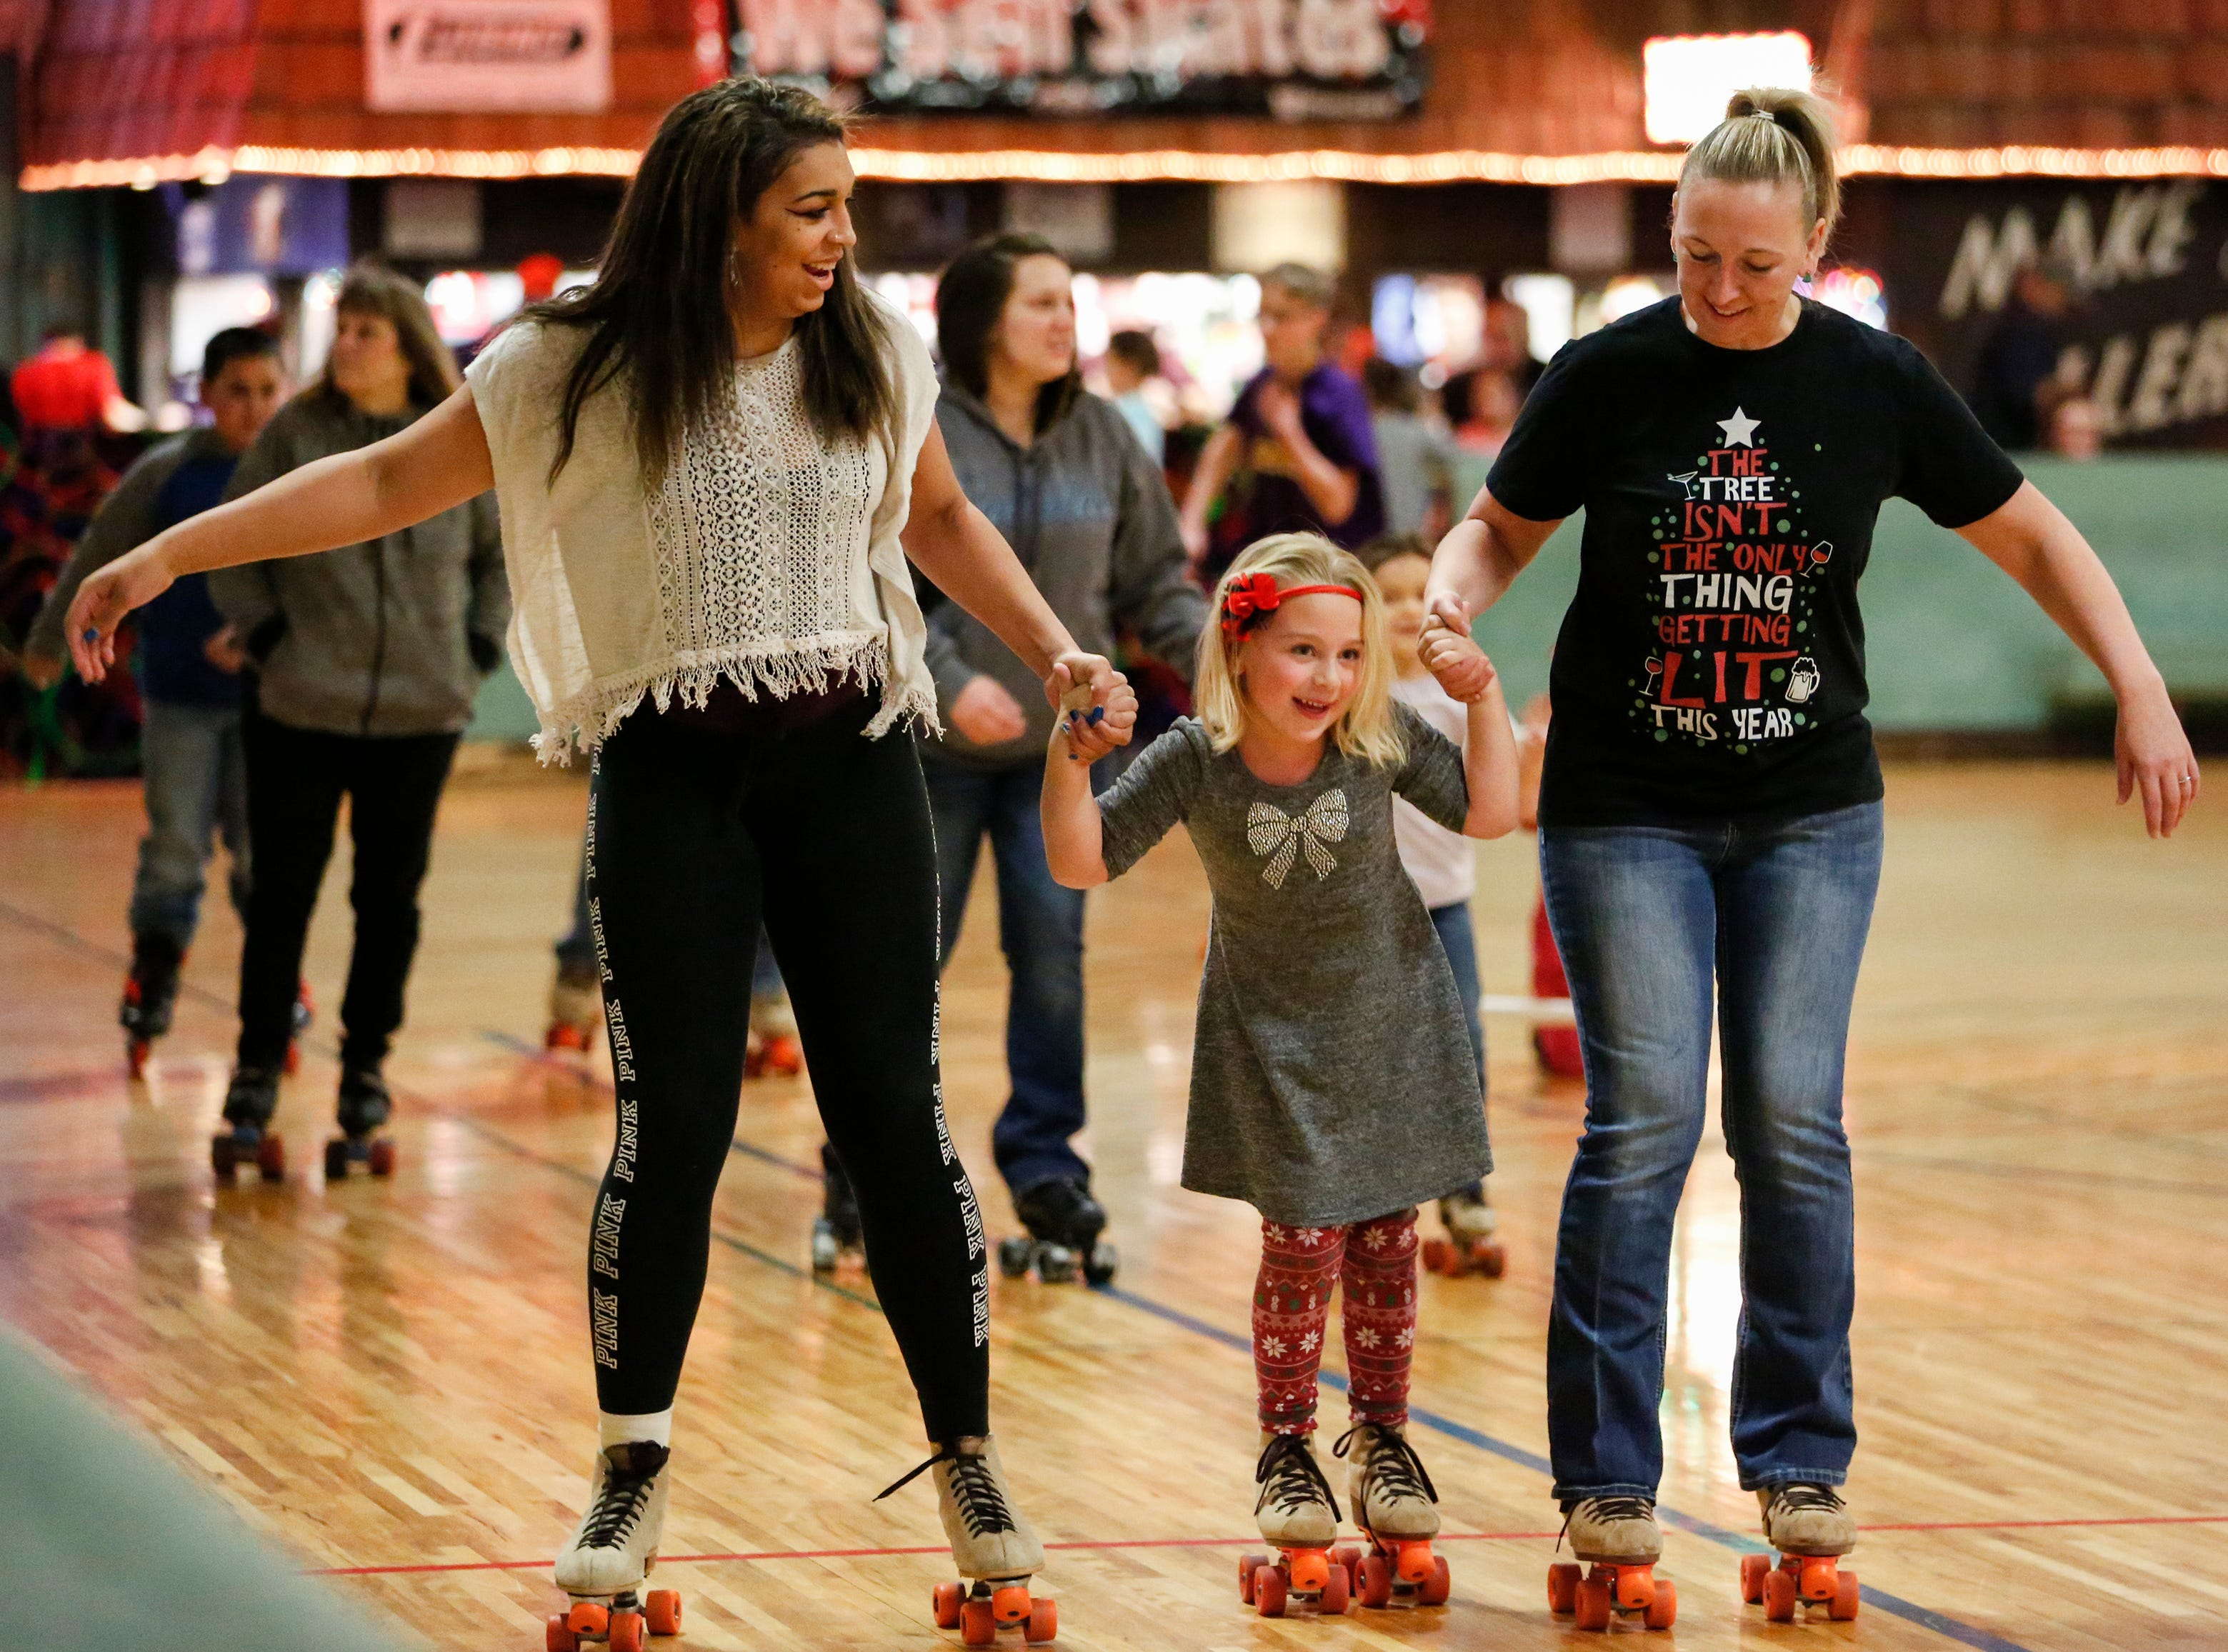 Valentina Stueck, 15, and Bailey Peters, 6, skate with their mom Amy Peters during the 20th annual Santa Skate at Rollaire Skate Center Saturday, December 15, 2018, in Manitowoc, Wis. Joshua Clark/USA TODAY NETWORK-Wisconsin